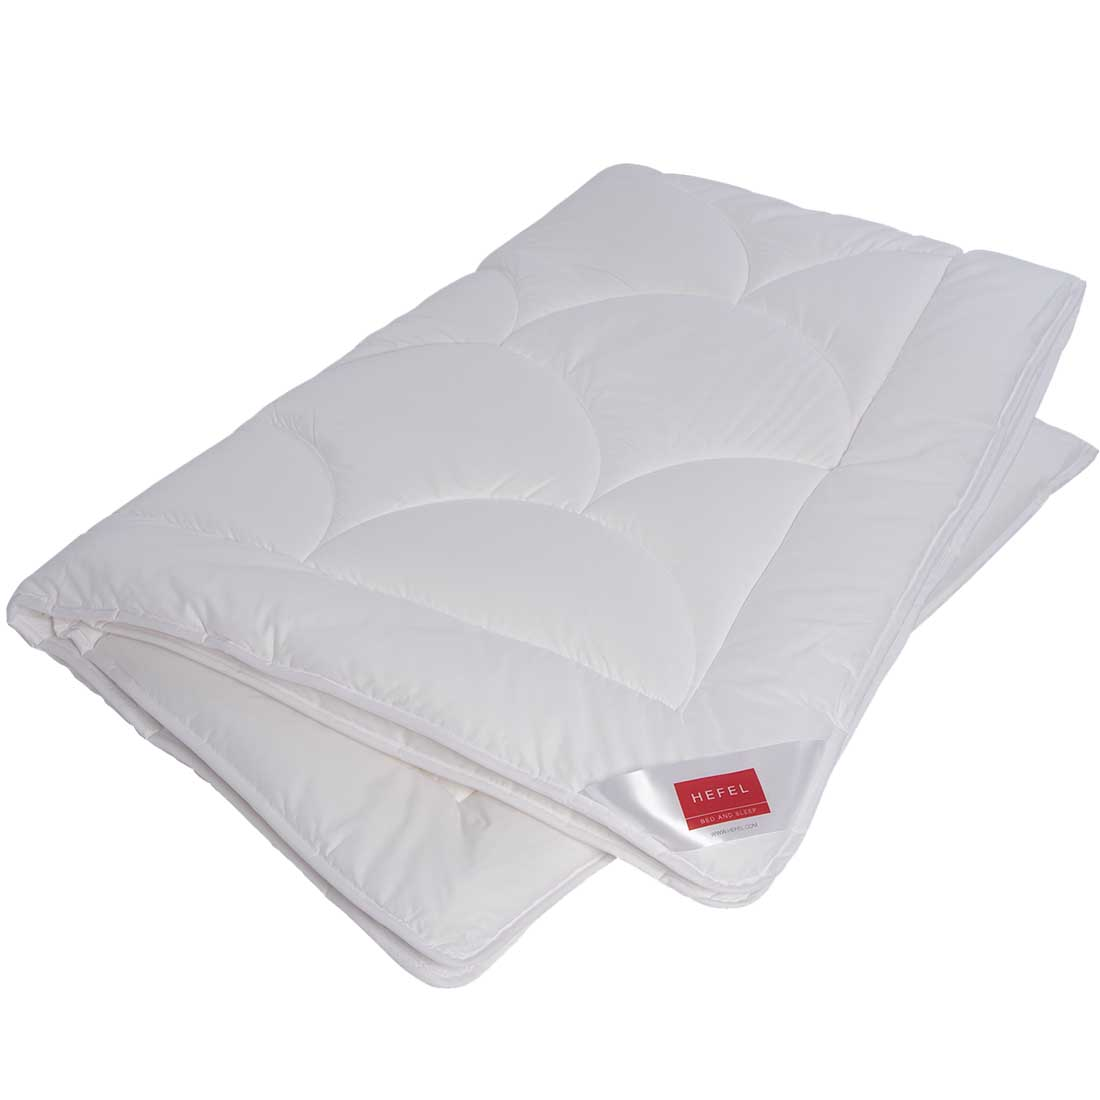 Tencel® Winterdecke Edition 101 von HEFEL